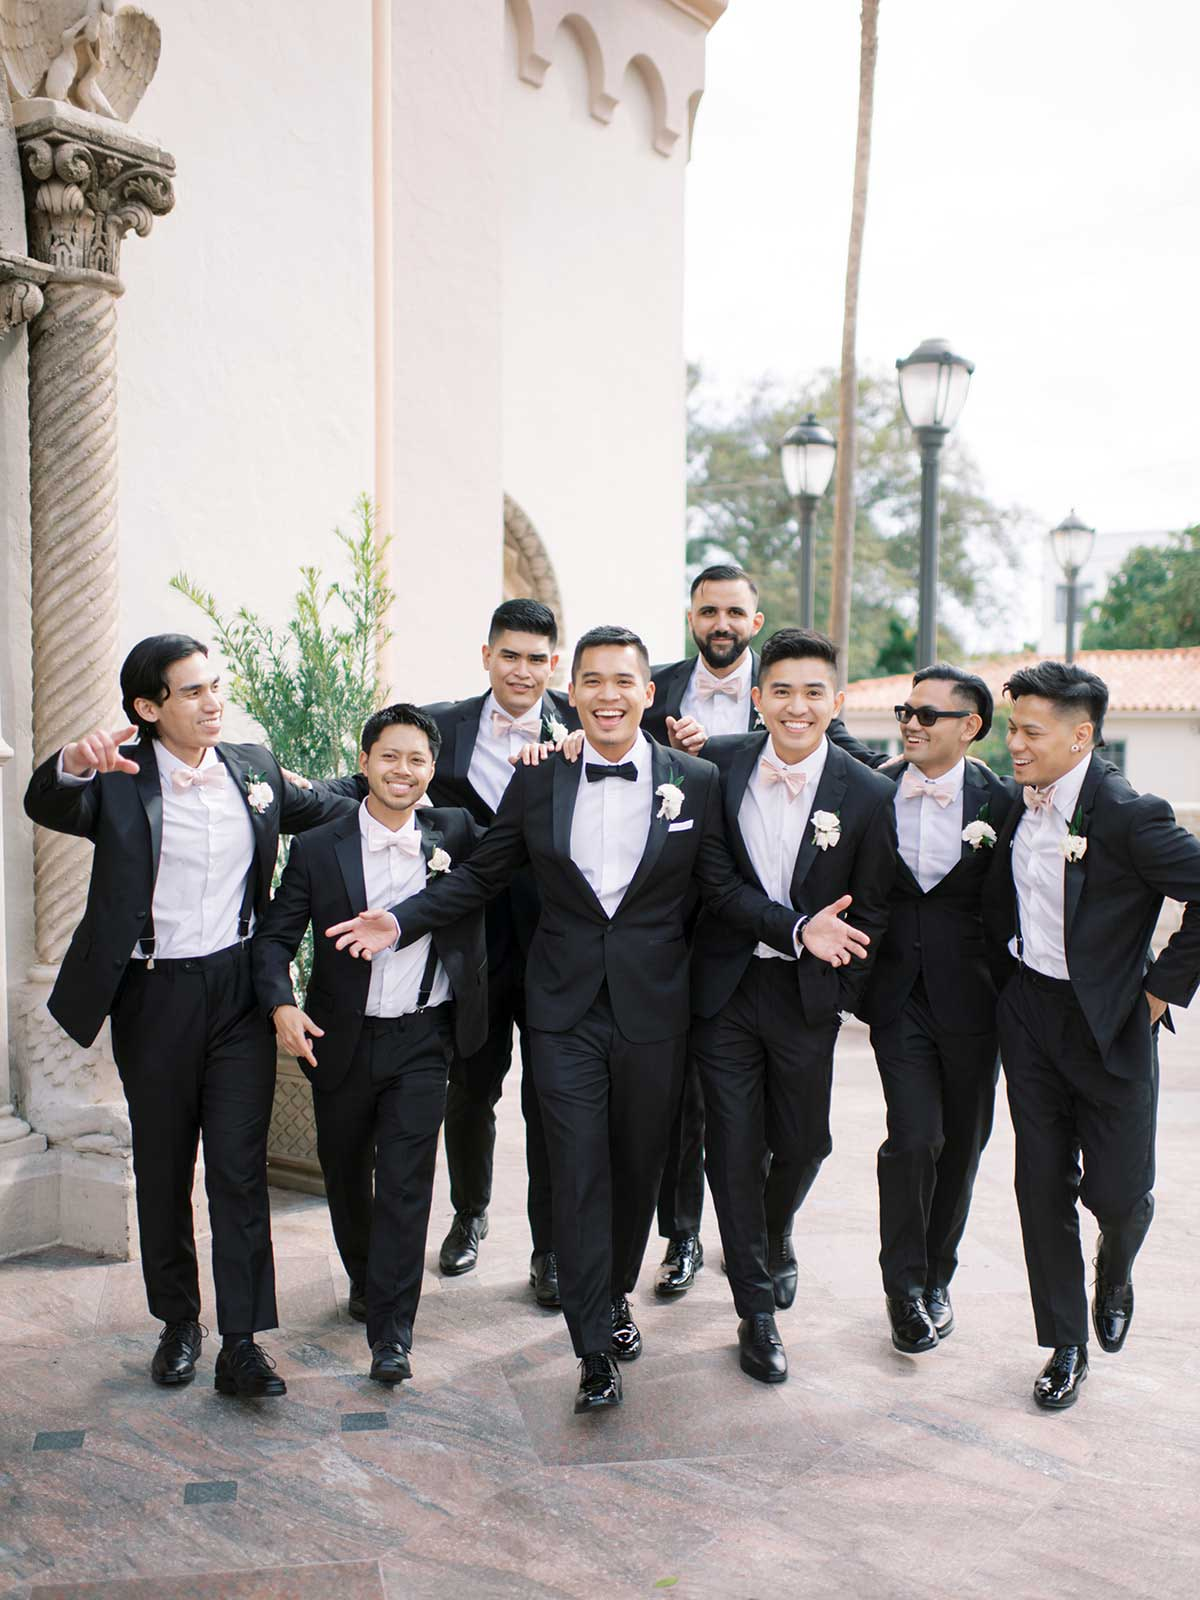 groom and groomsmen walk towards camera for a candid photo.